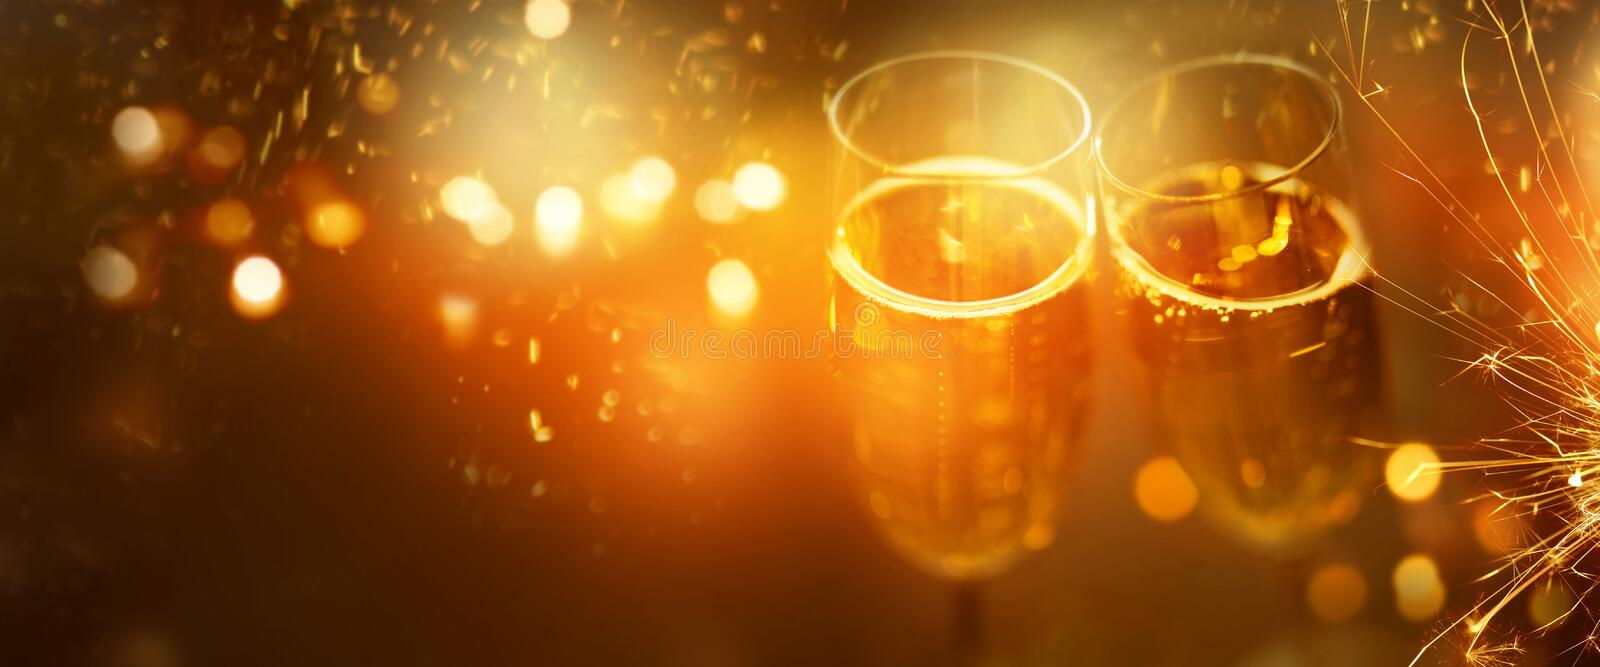 New years eve cheers with champagne royalty free stock images